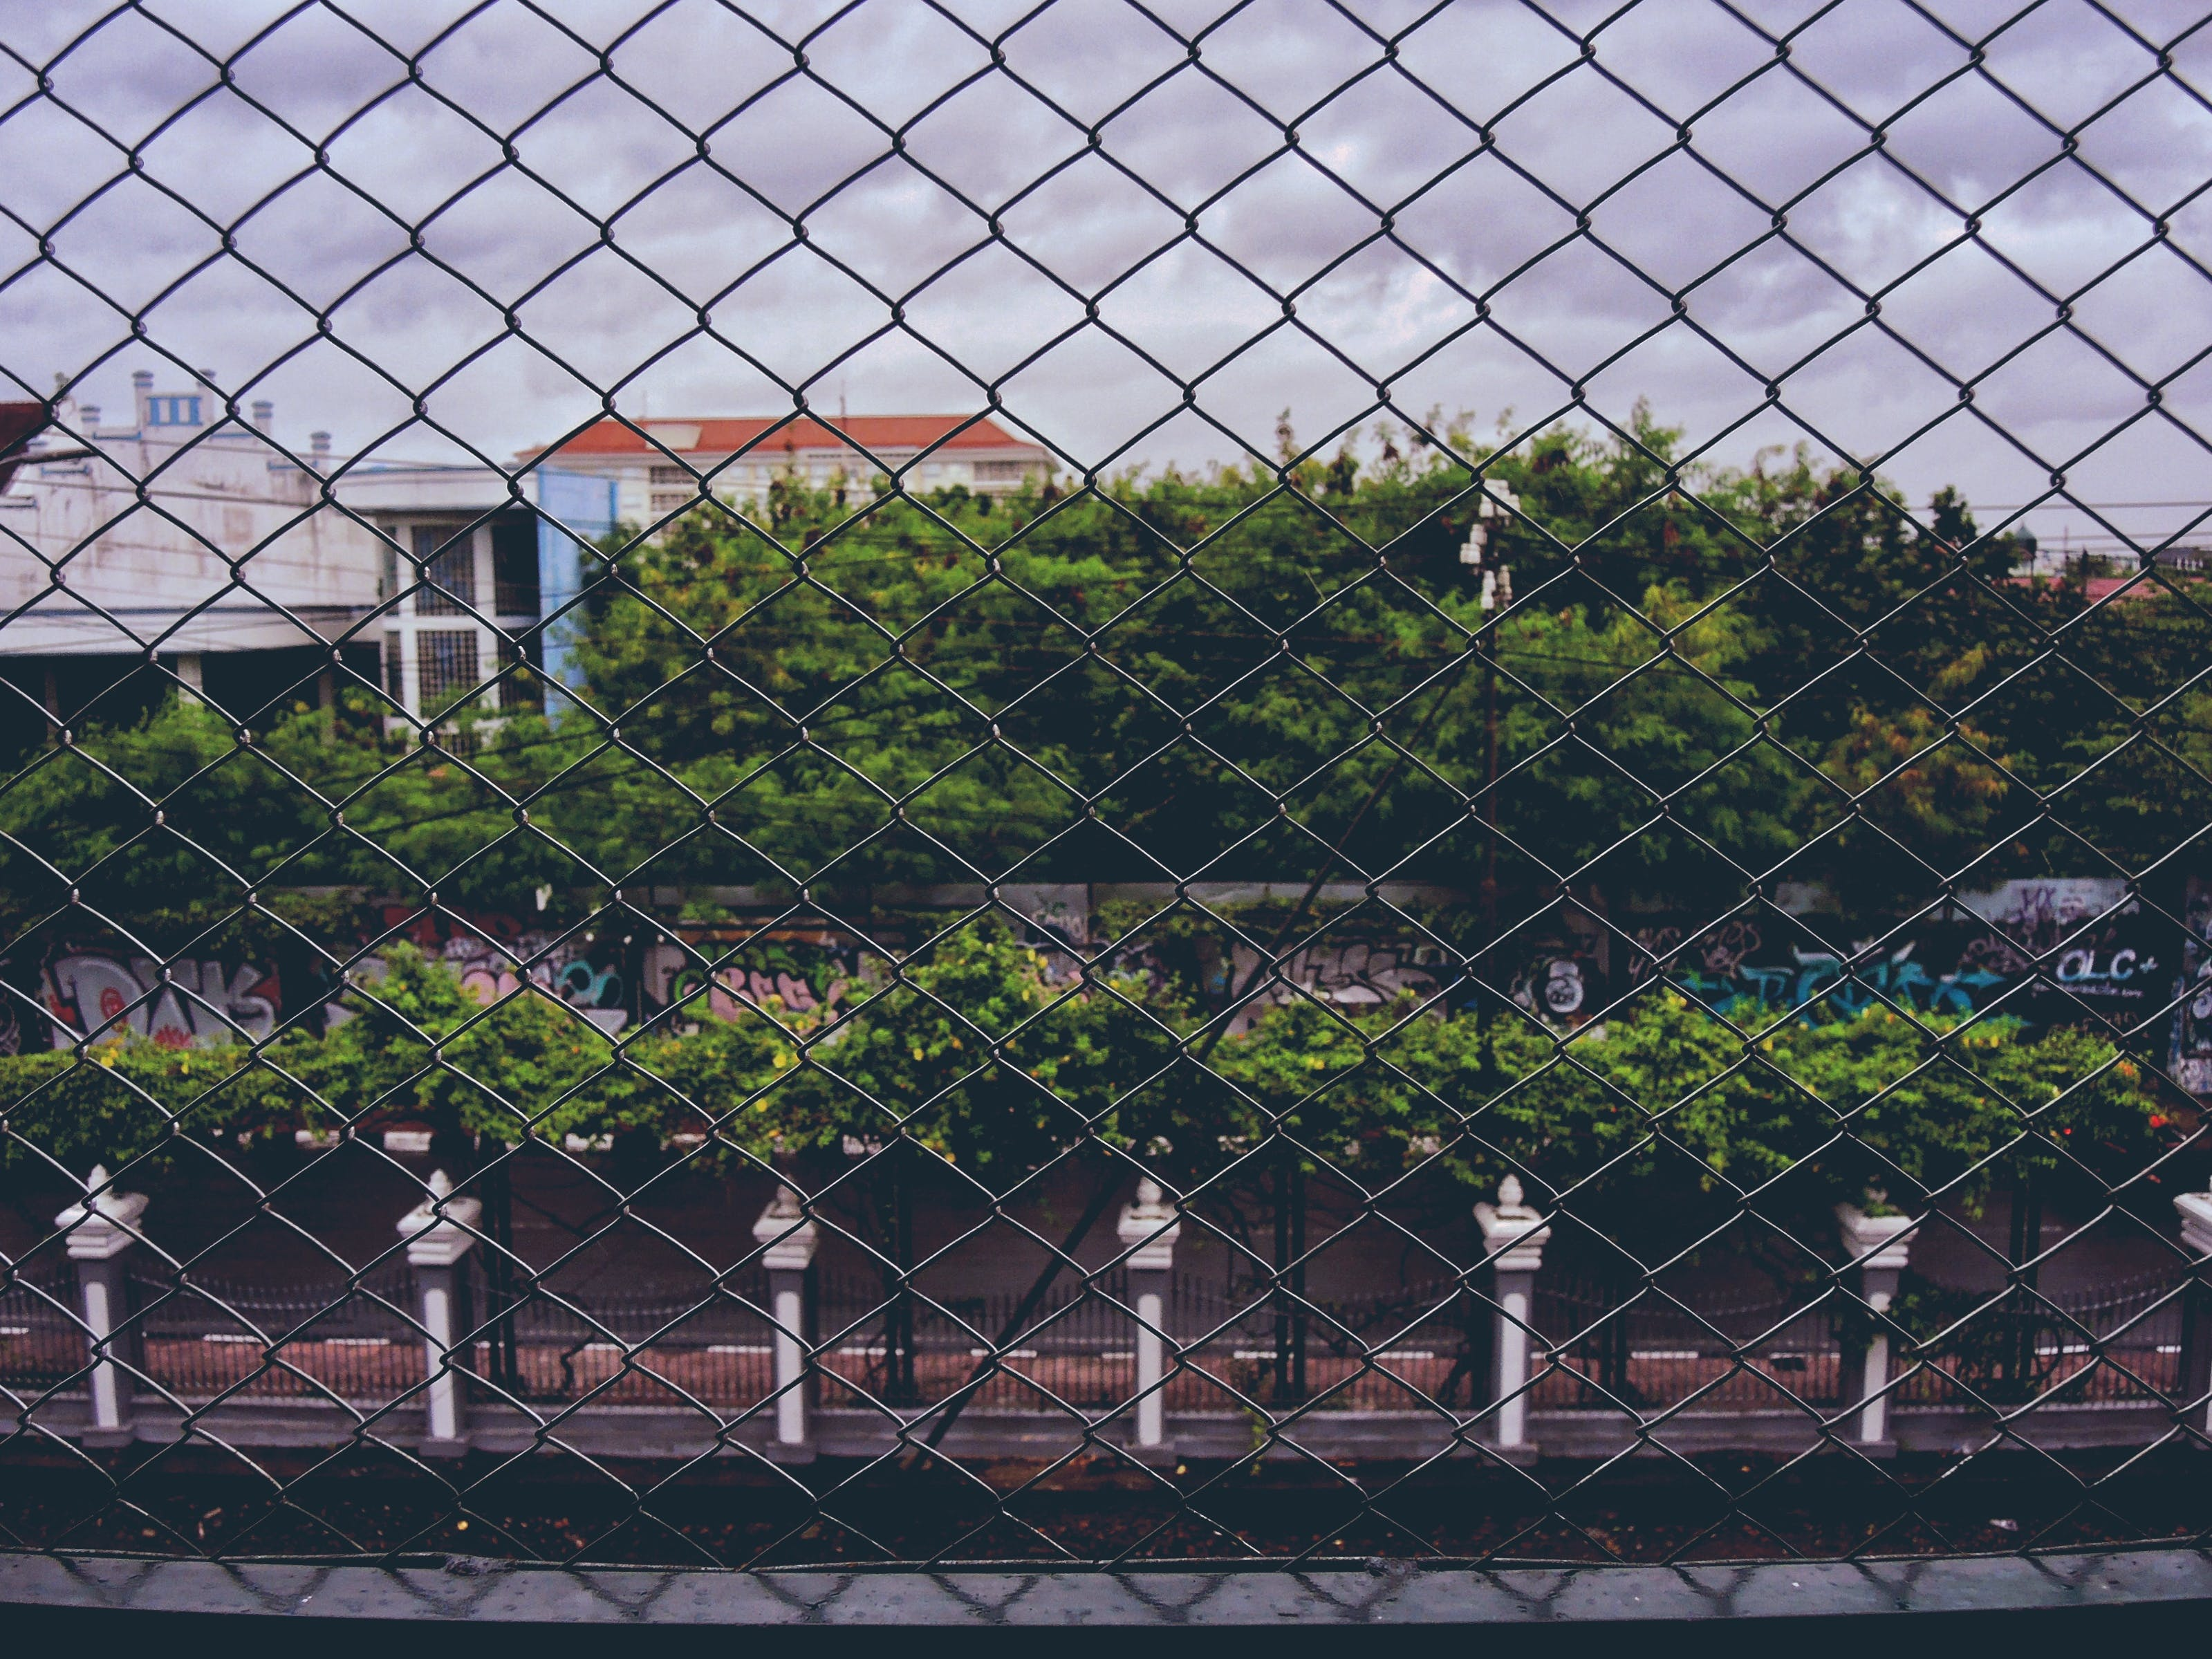 Free stock photo of #wire #street #rainy #photography #cage